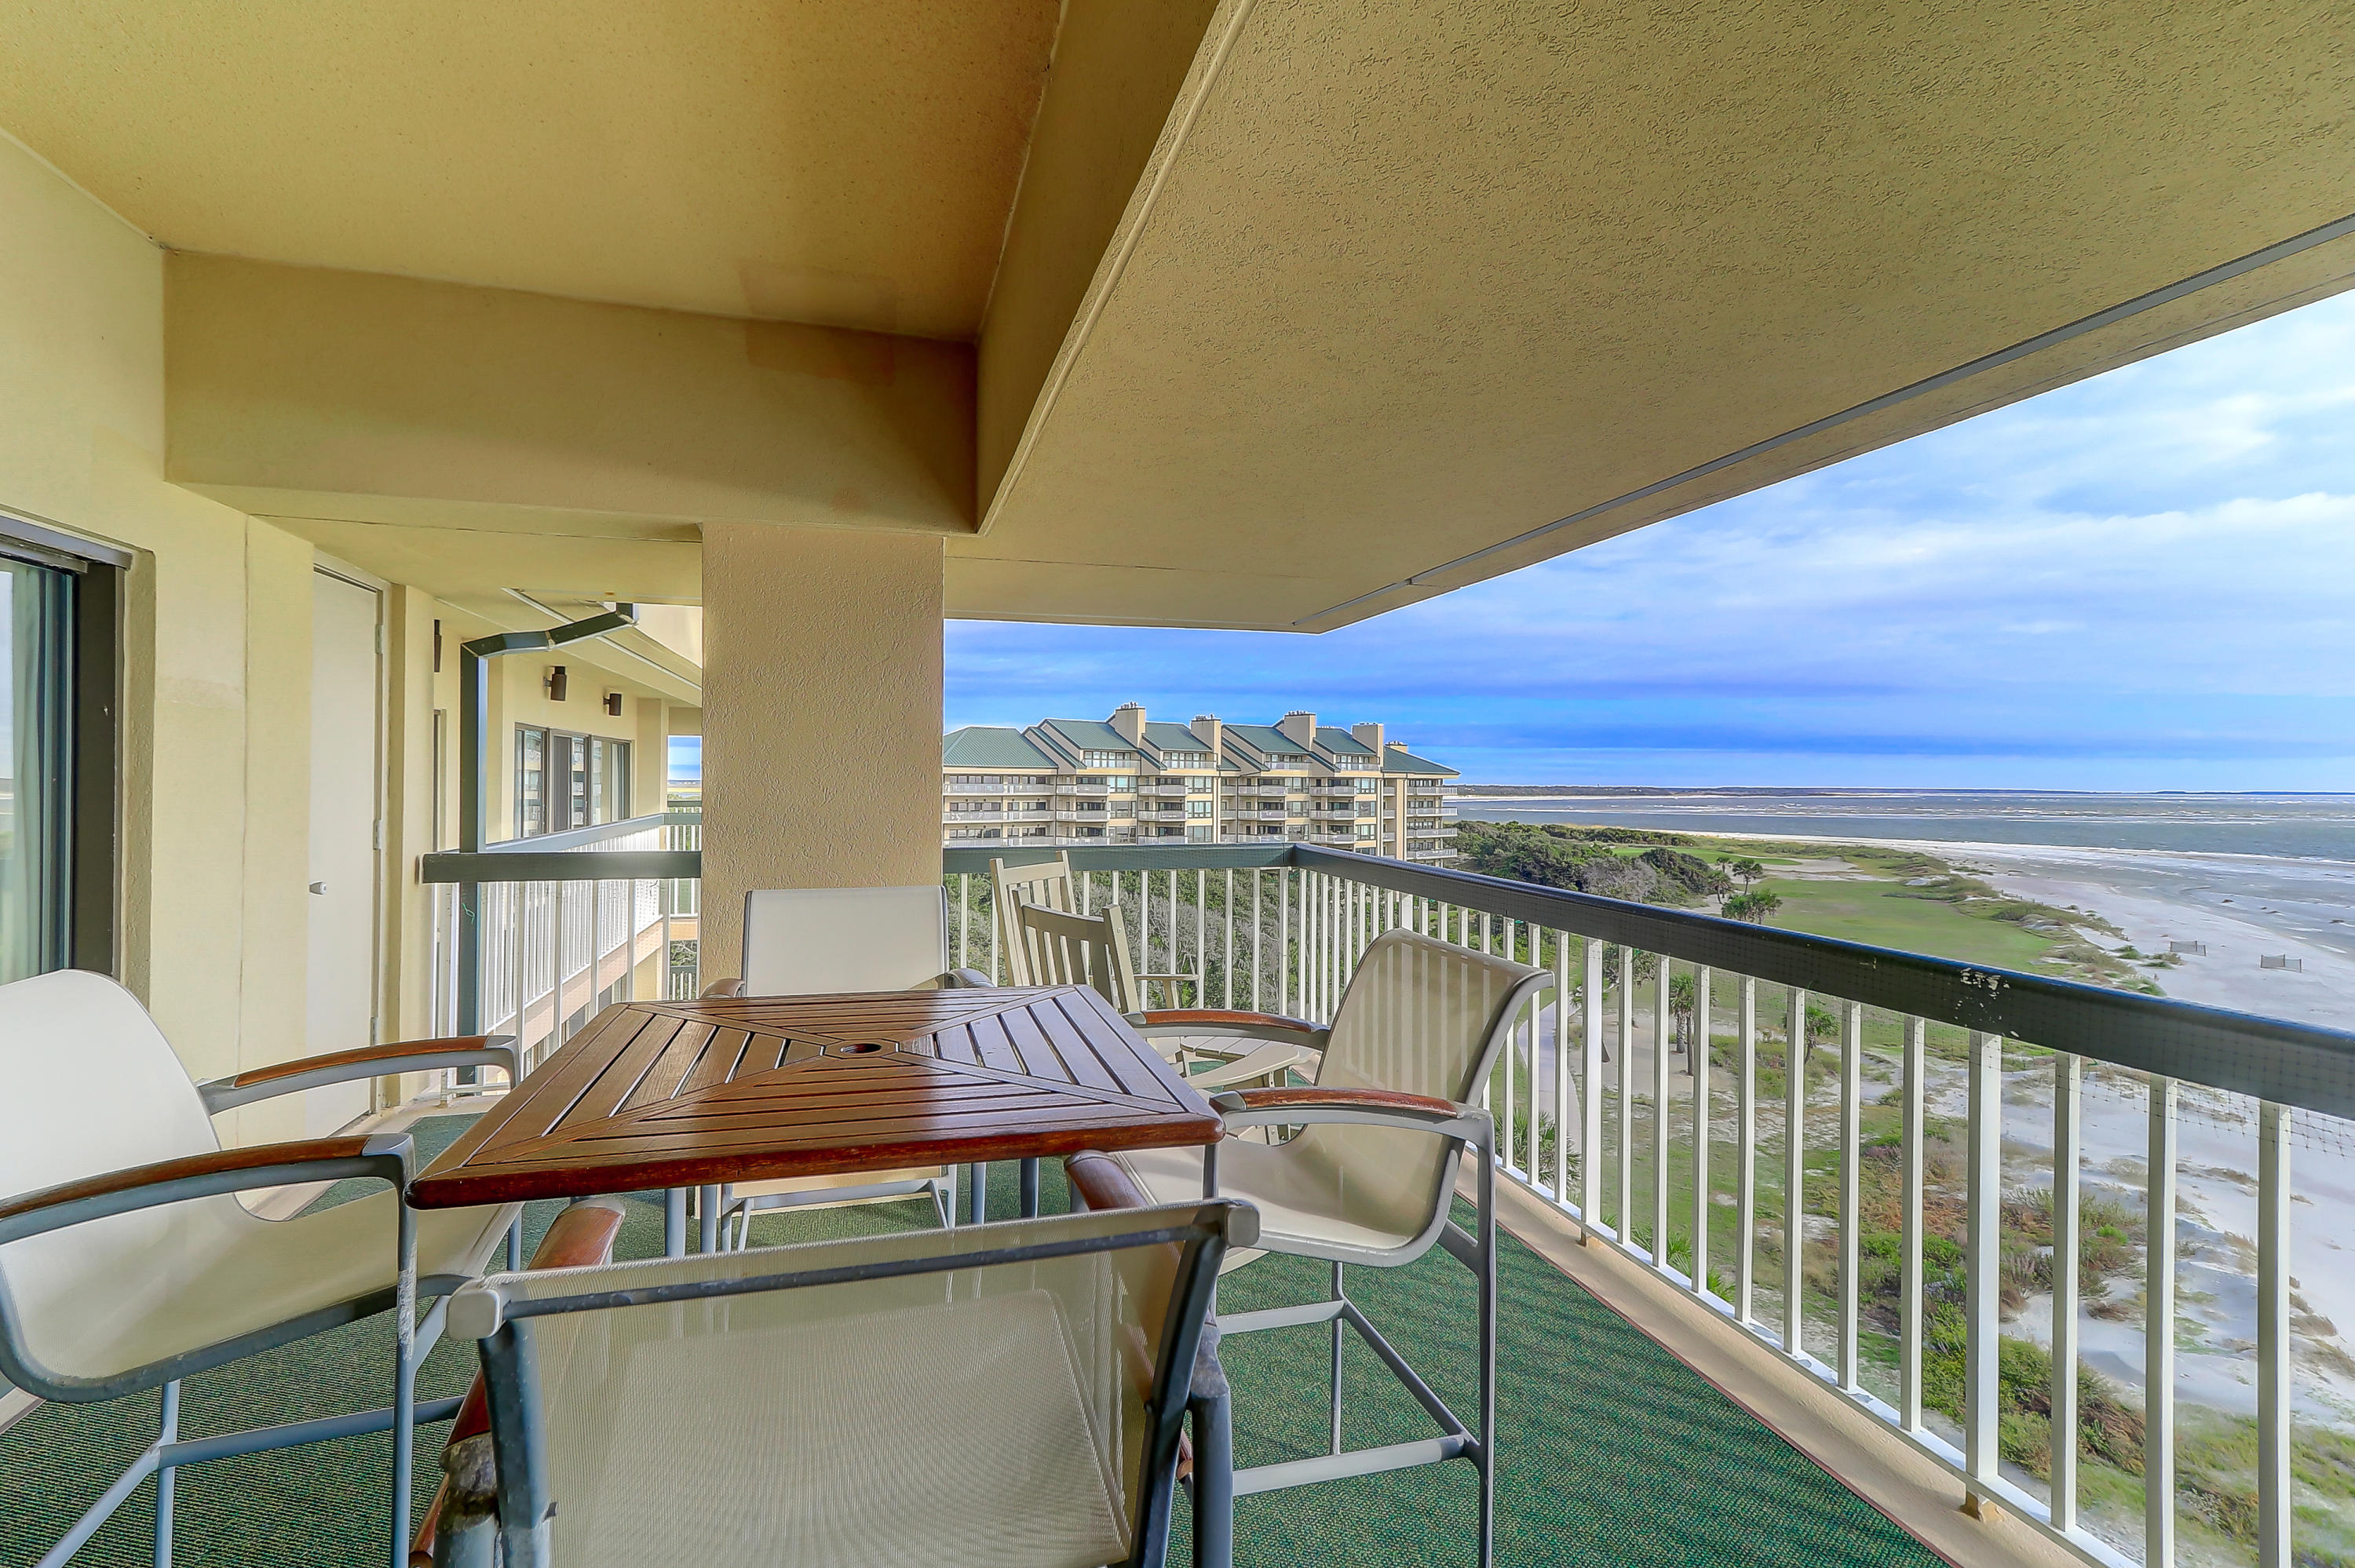 Wild Dunes Homes For Sale - 1506 Ocean Club, Isle of Palms, SC - 13